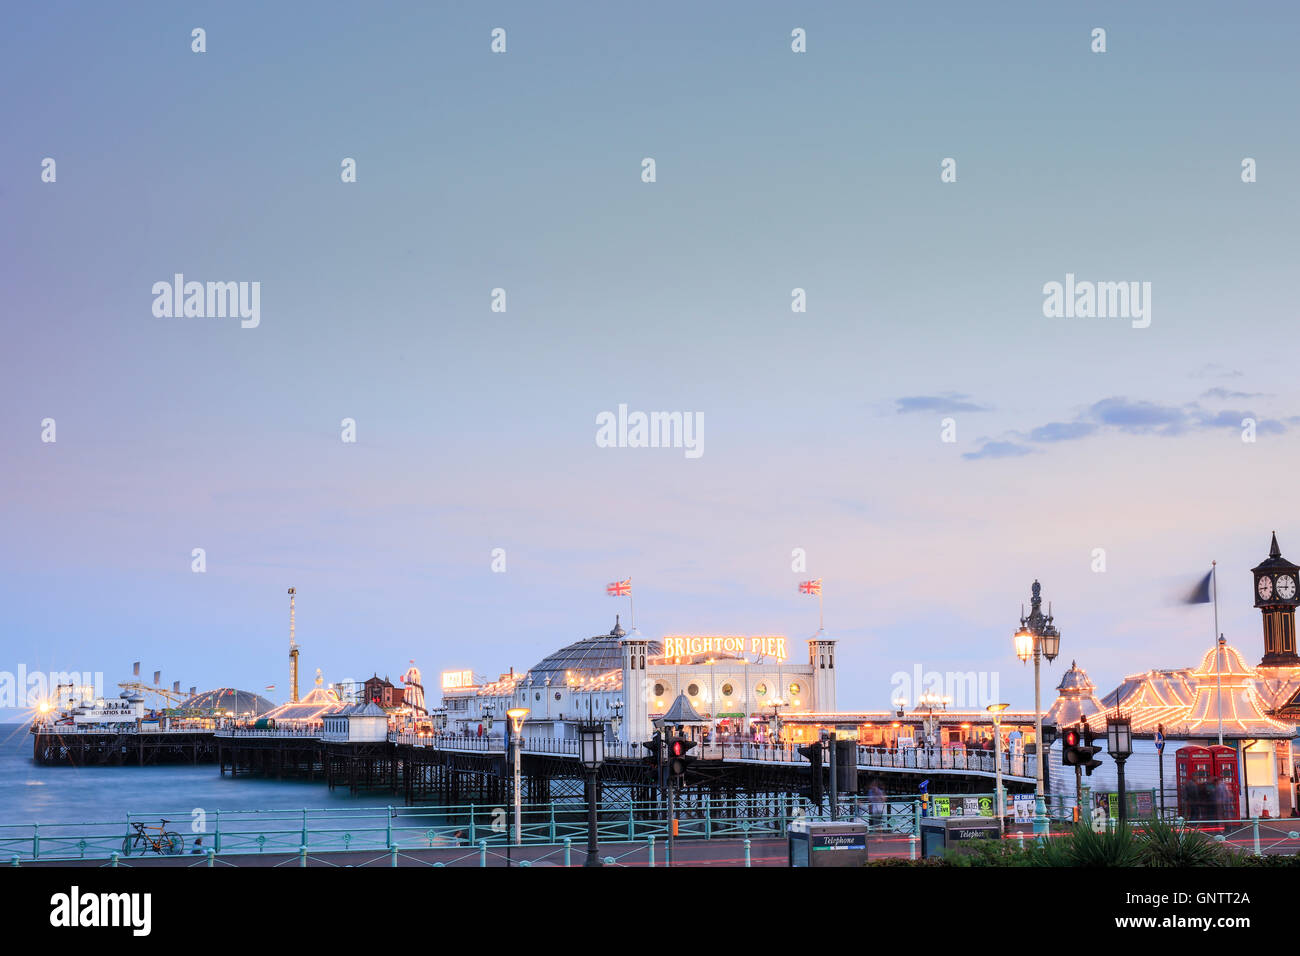 Brighton (Palast) Pier in Brighton, East Sussex Stockbild